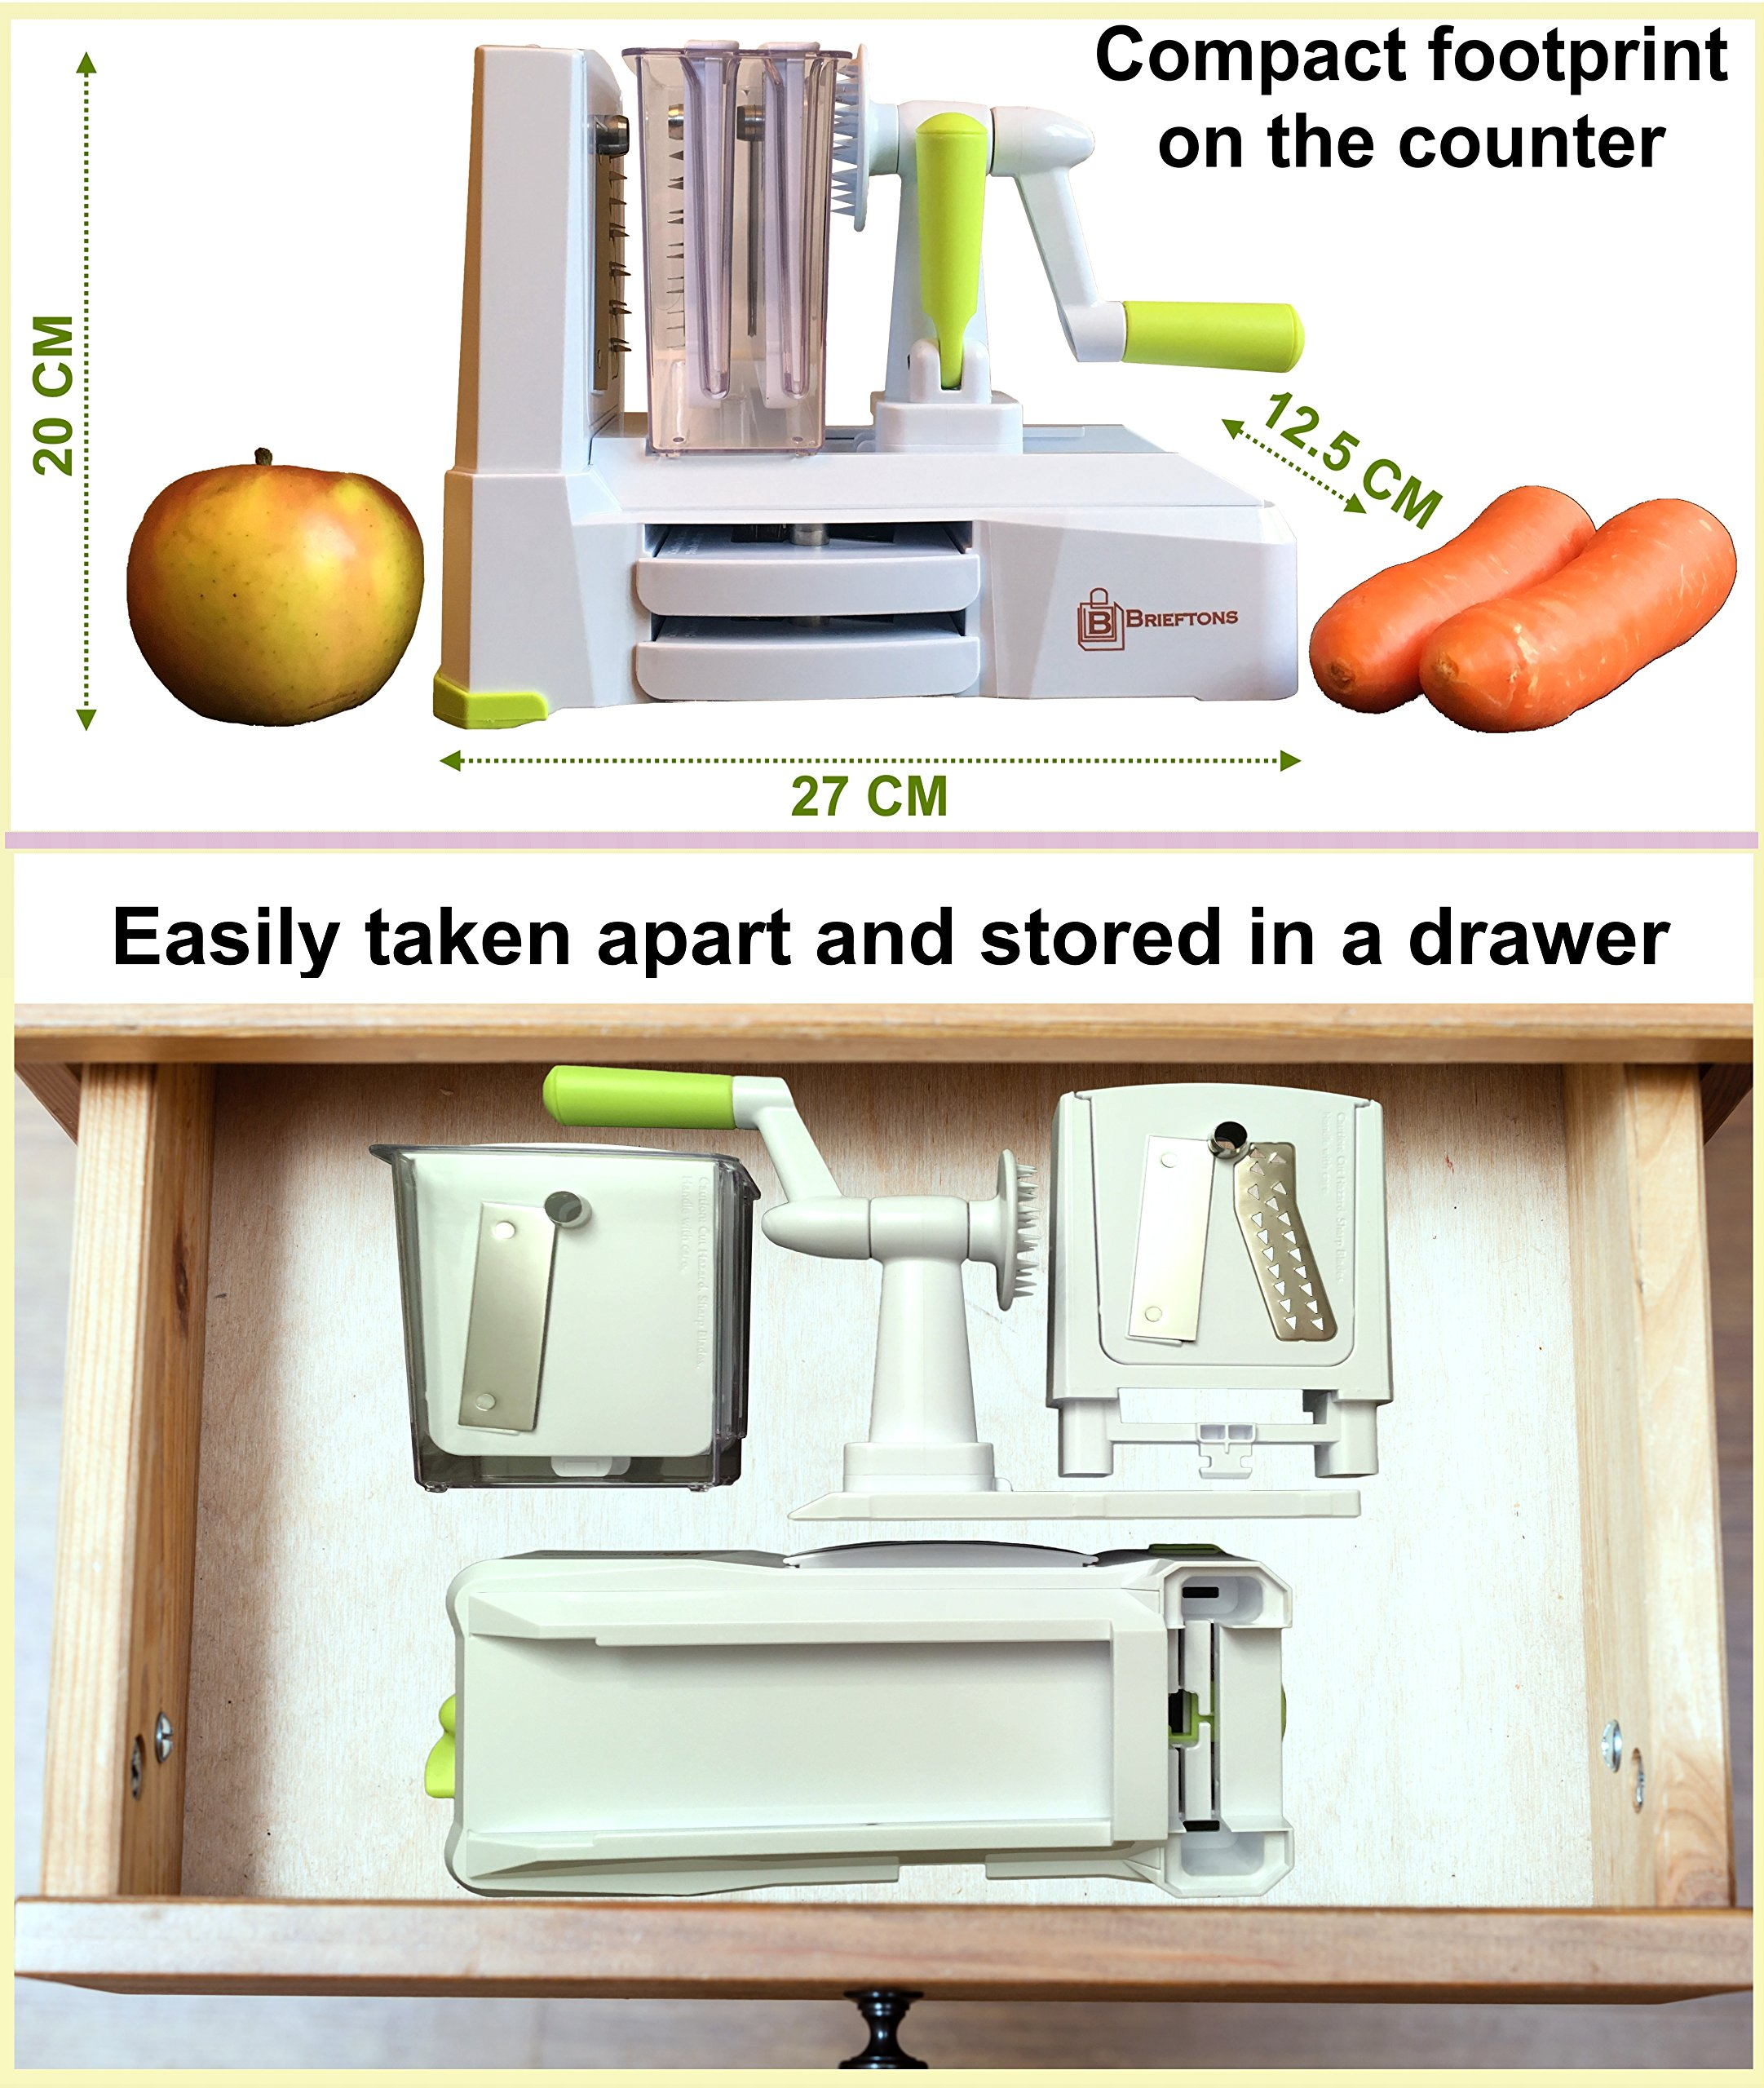 Brieftons 5-Blade Spiralizer (BR-5B-02): Strongest-and-Heaviest Duty Vegetable Spiral Slicer, Best Veggie Pasta Spaghetti Maker for Low Carb/Paleo/Gluten-Free, With Extra Blade Caddy & 4 Recipe Ebooks by Brieftons (Image #5)